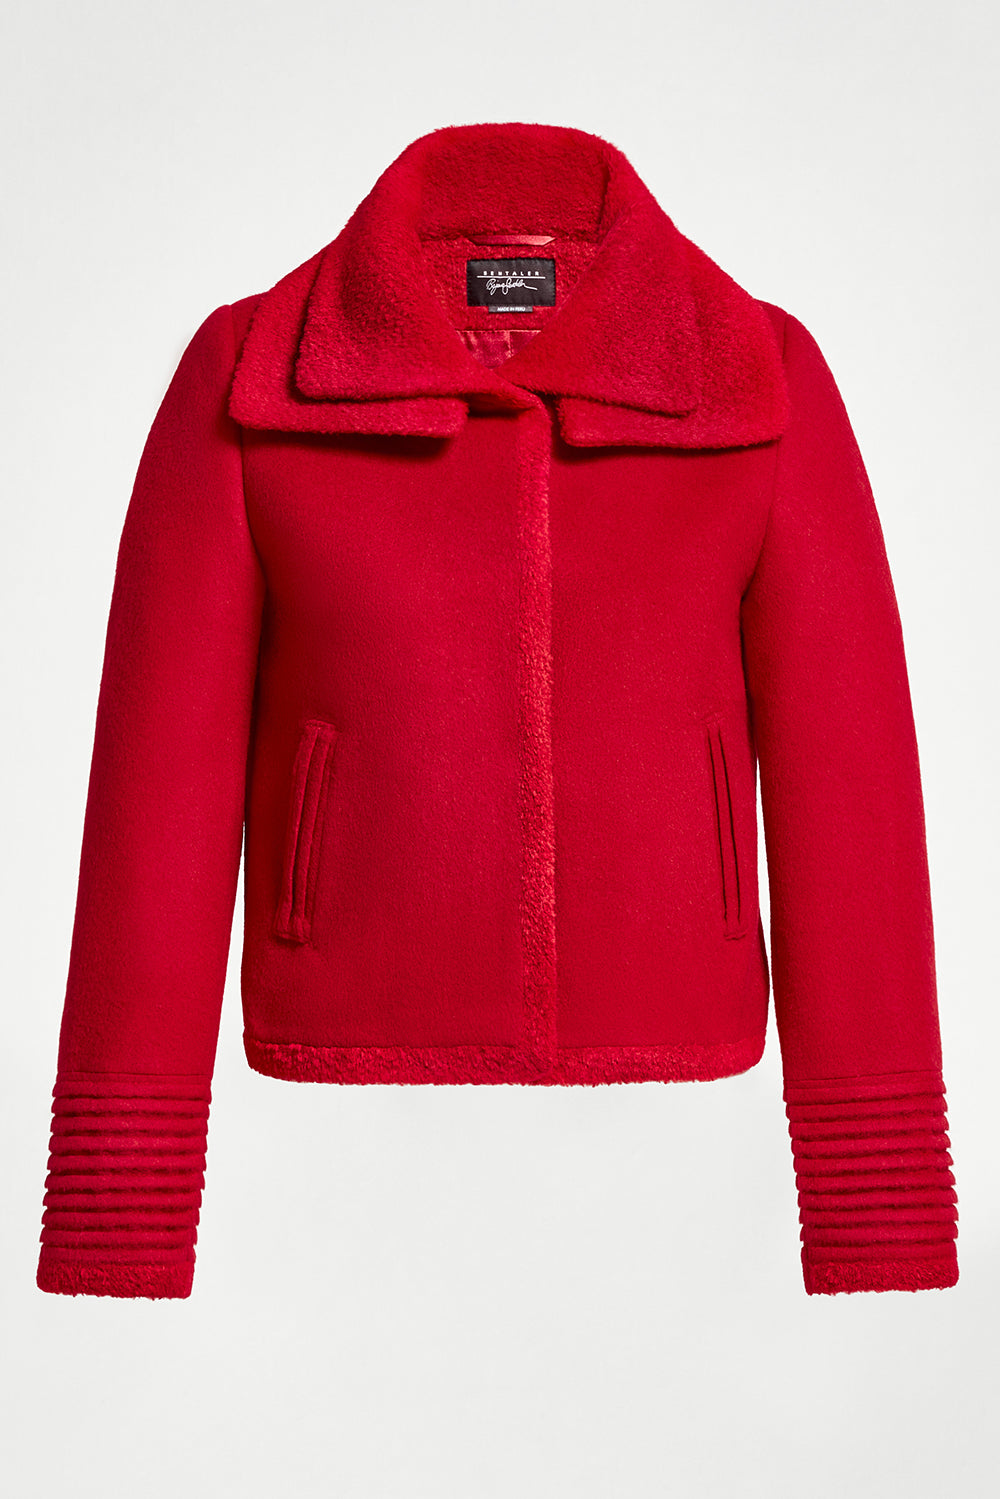 Sentaler Moto Jacket with Signature Double Collar featured in Baby Alpaca and available in Scarlet Red. Seen off model.